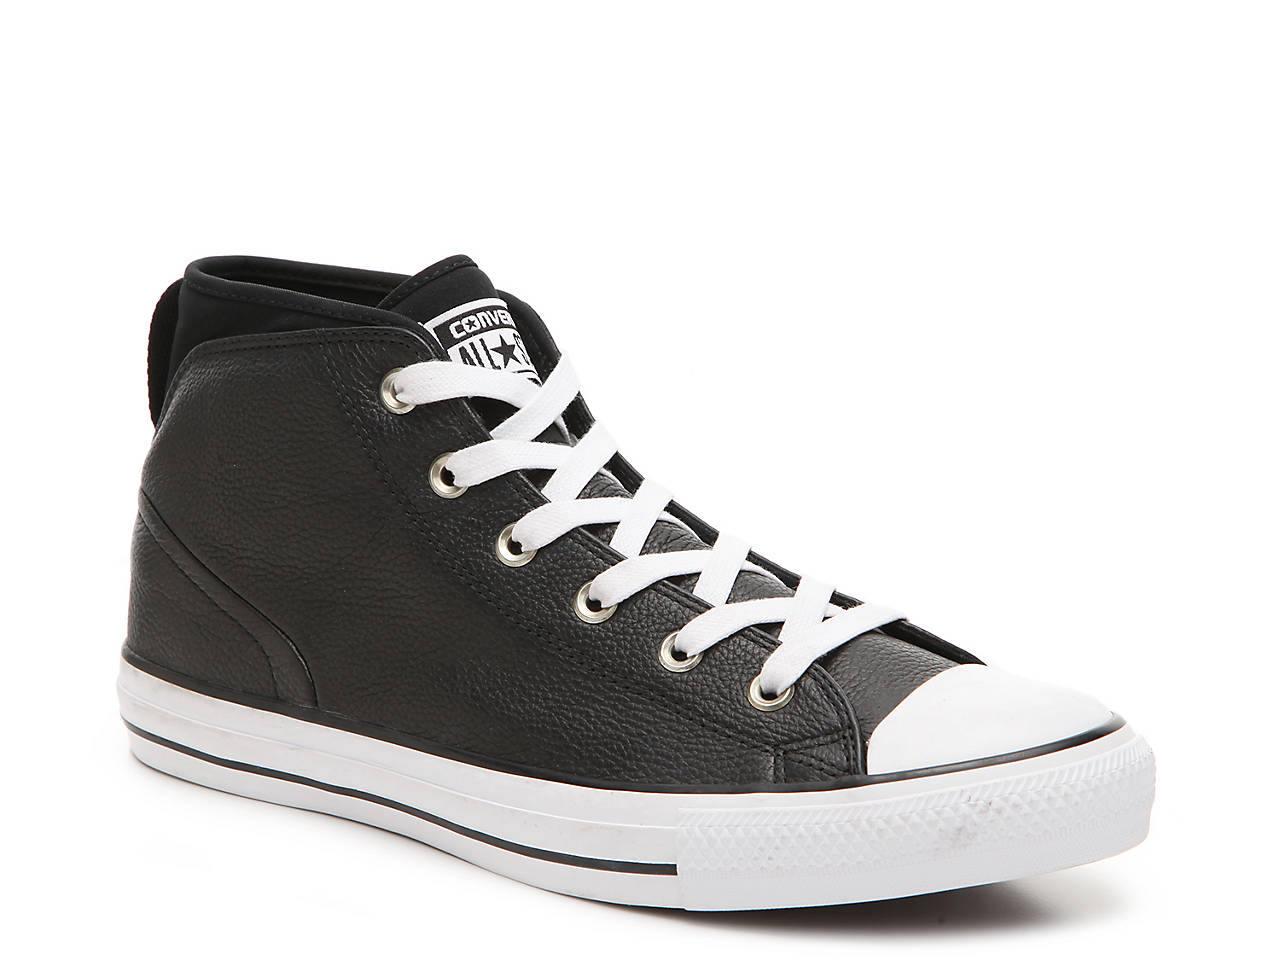 99d8ae6e75e Converse Chuck Taylor All Star Syde Street High-Top Sneaker - Men s ...